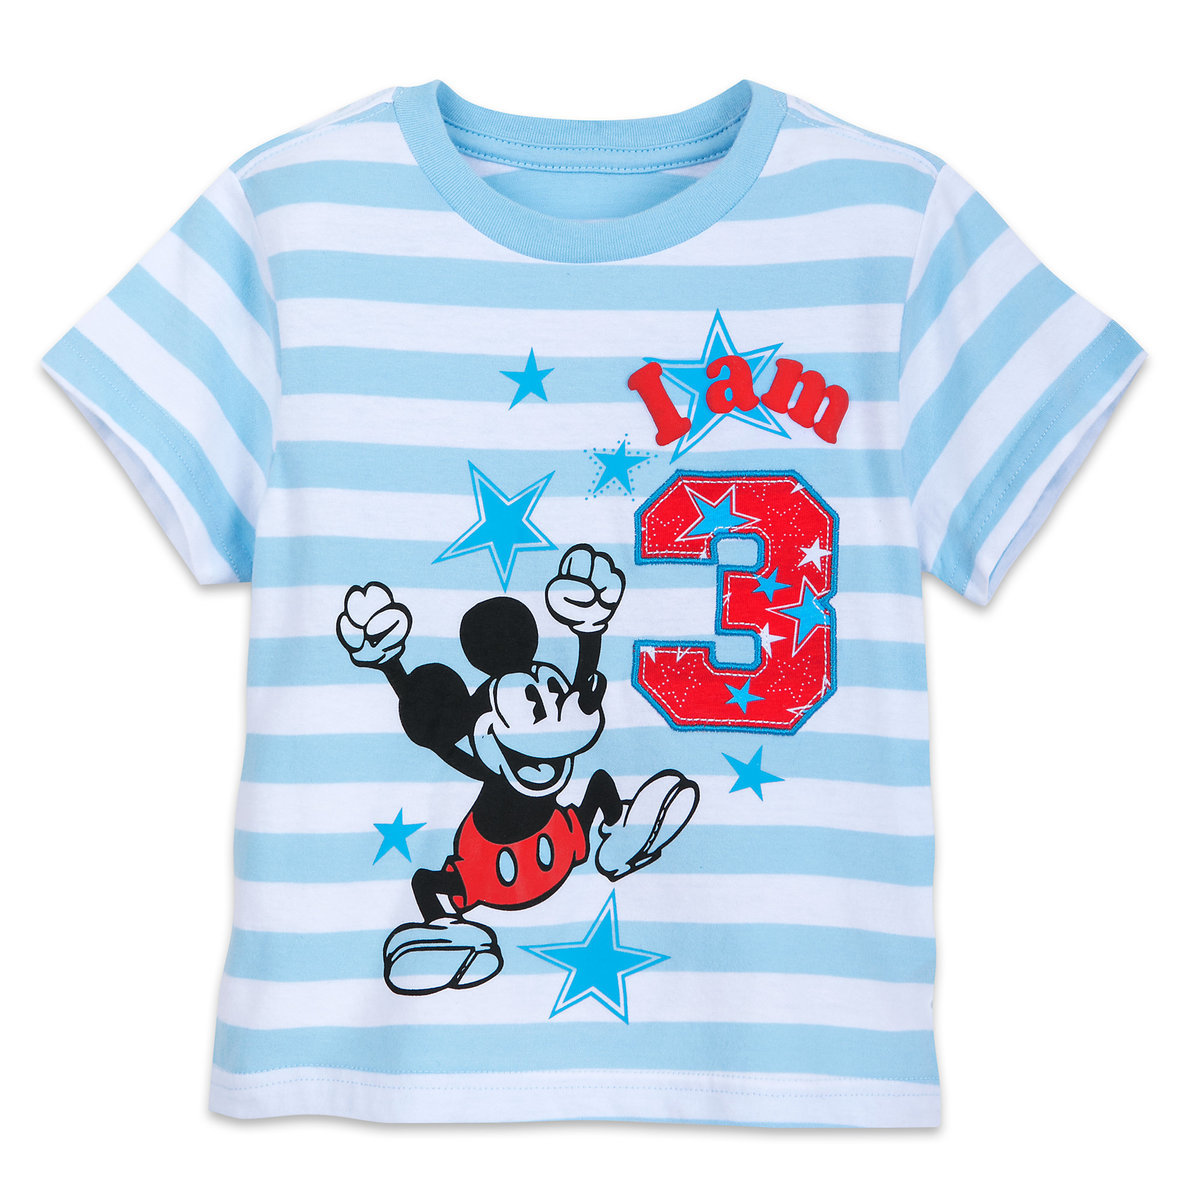 Product Image Of Mickey Mouse Birthday Tee For Boys 4